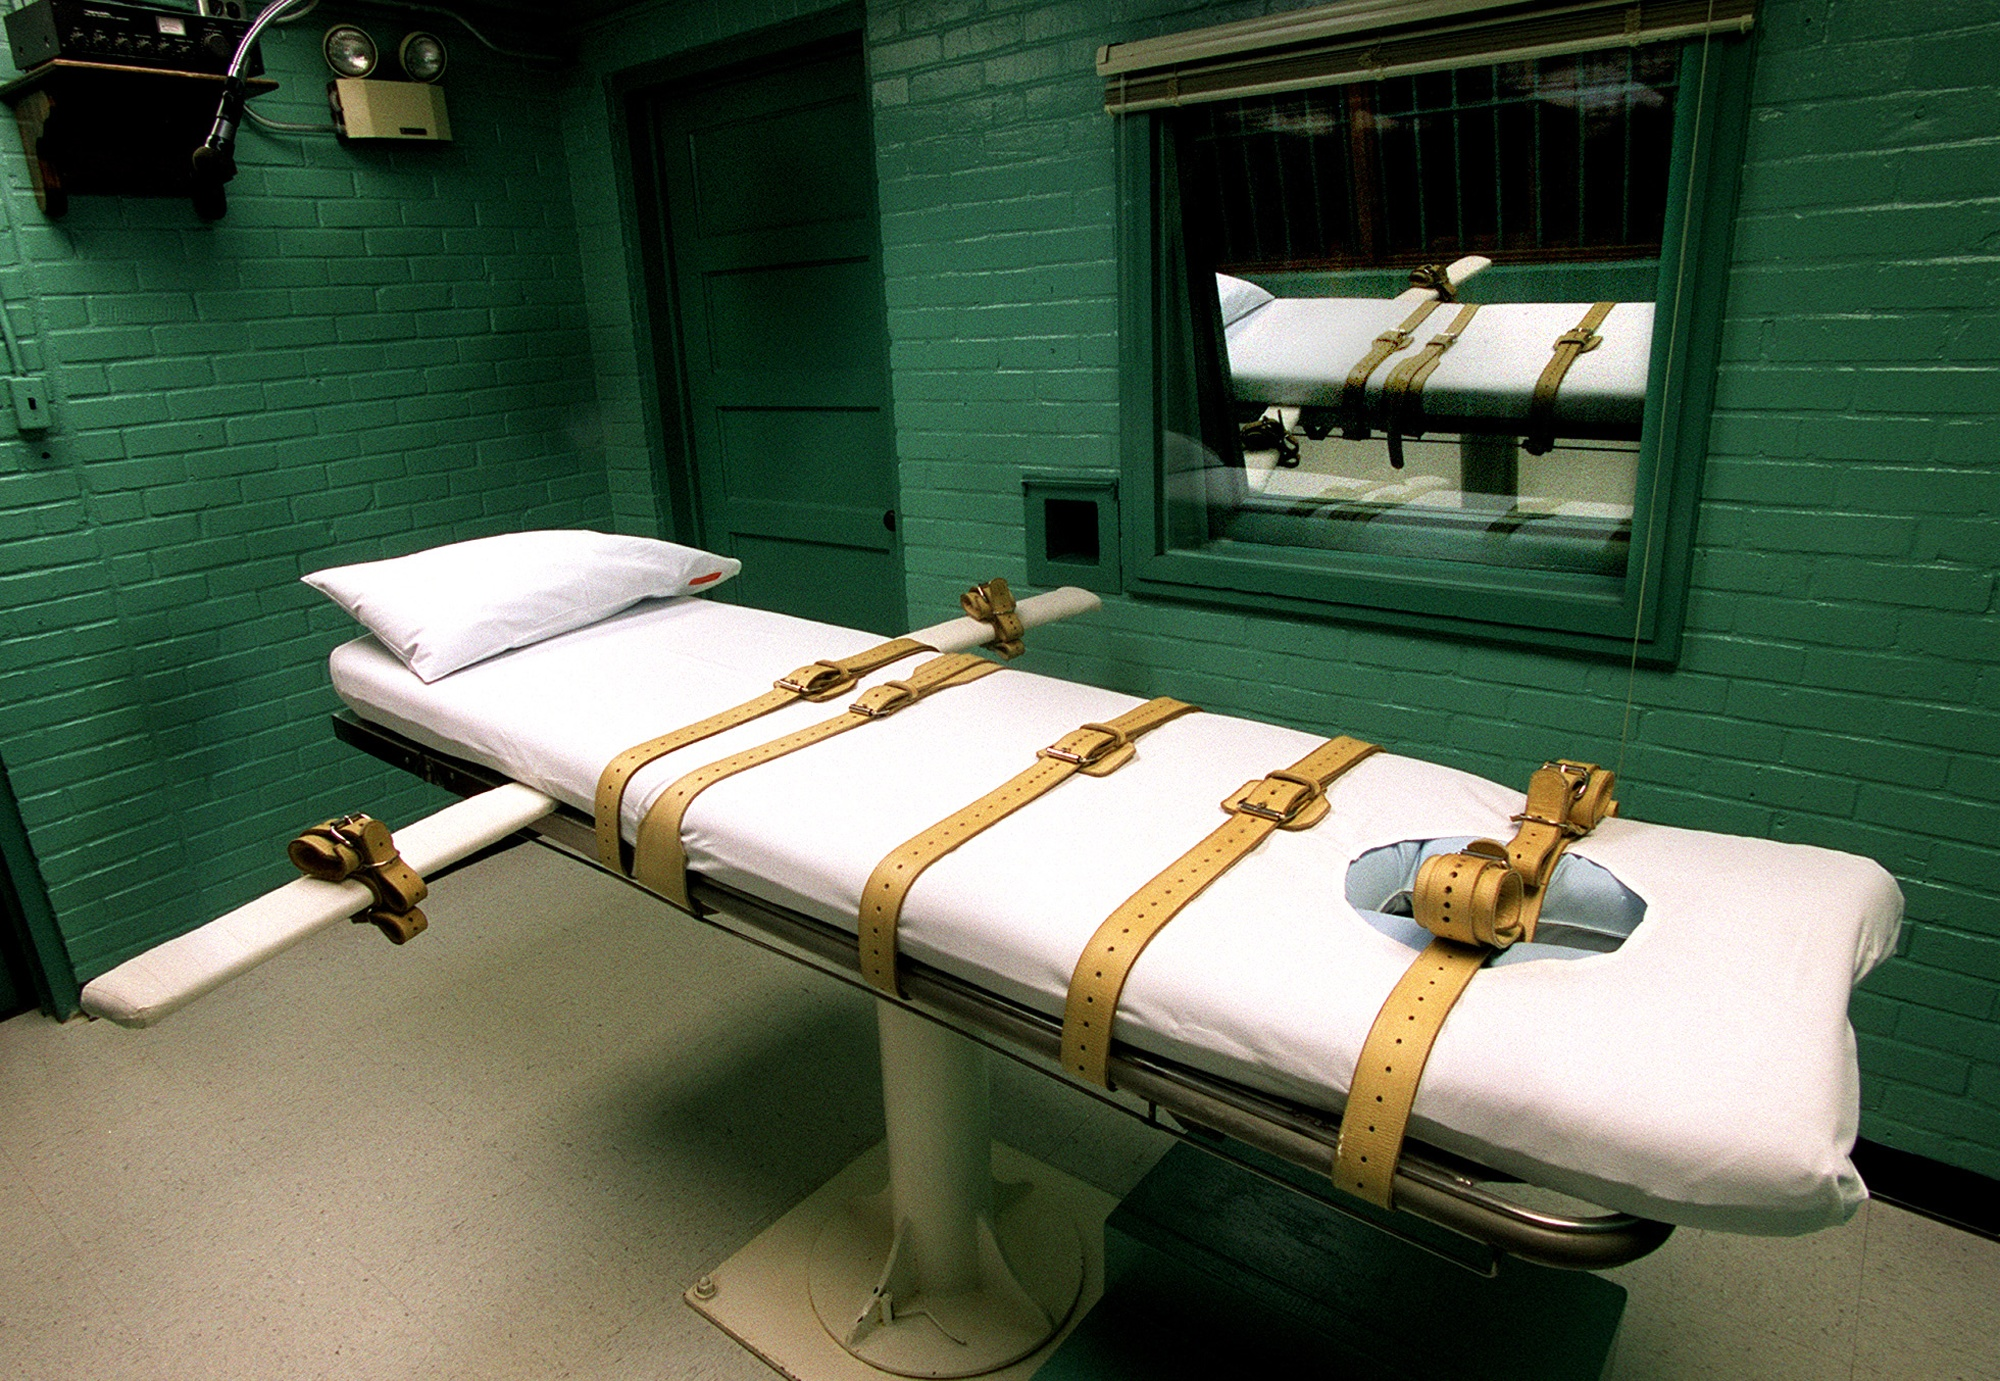 Martin Dyckman: Lingering questions should end death penalty in